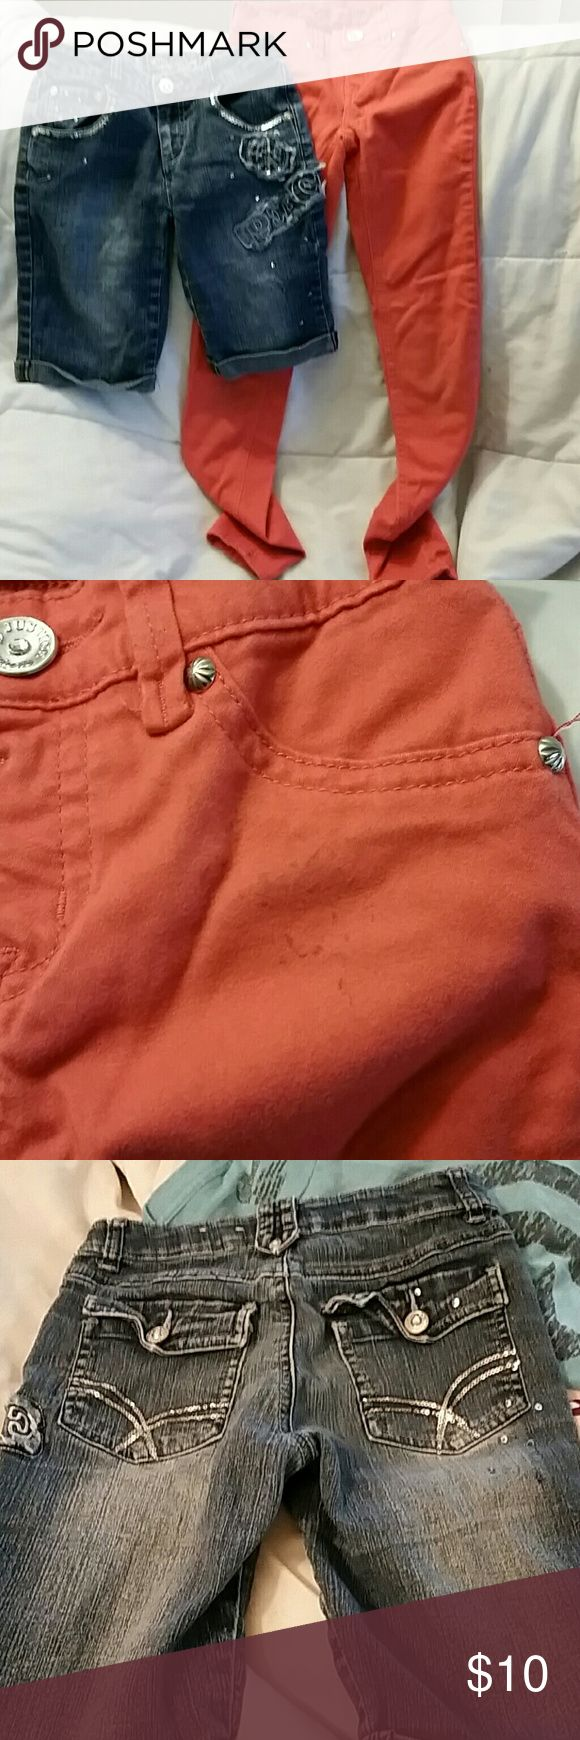 Justice and Total girl jeans 10 Justice pants are jeggins style. Has working button and no zipper.  Has discoloration on fron as seen in picture.  Super soft material.  Justice is 10s and the jeans are 10 reg.  The jeans are super cute with patches and sequins. Justice Bottoms Jeans